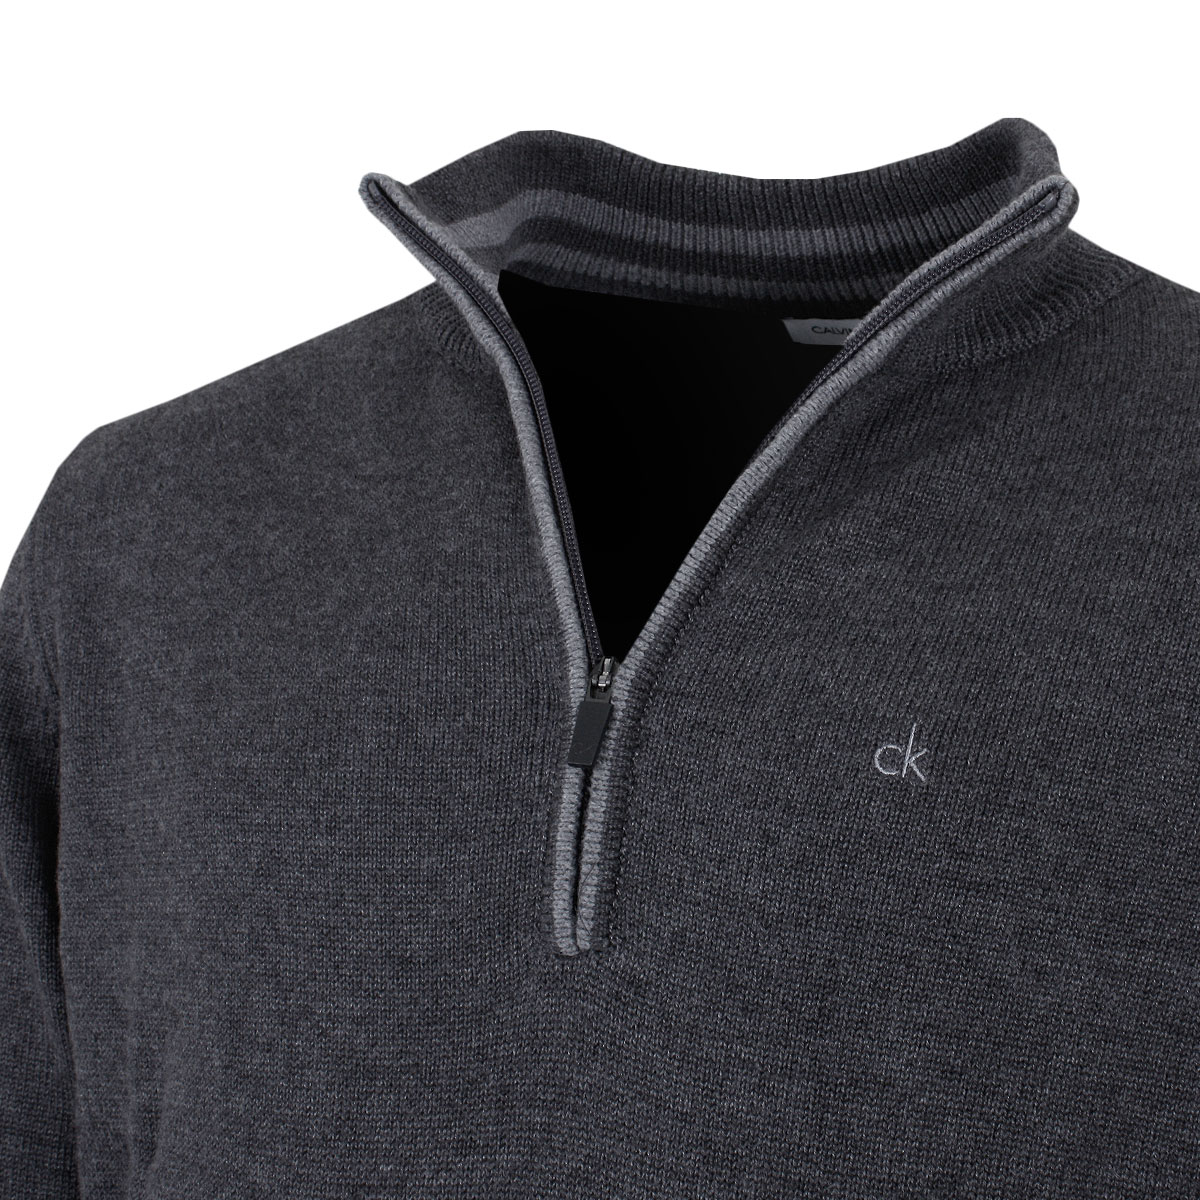 Calvin-Klein-Golf-Mens-2019-Chunky-Cotton-1-2-Zip-Golf-Top-Sweater-37-OFF-RRP thumbnail 22